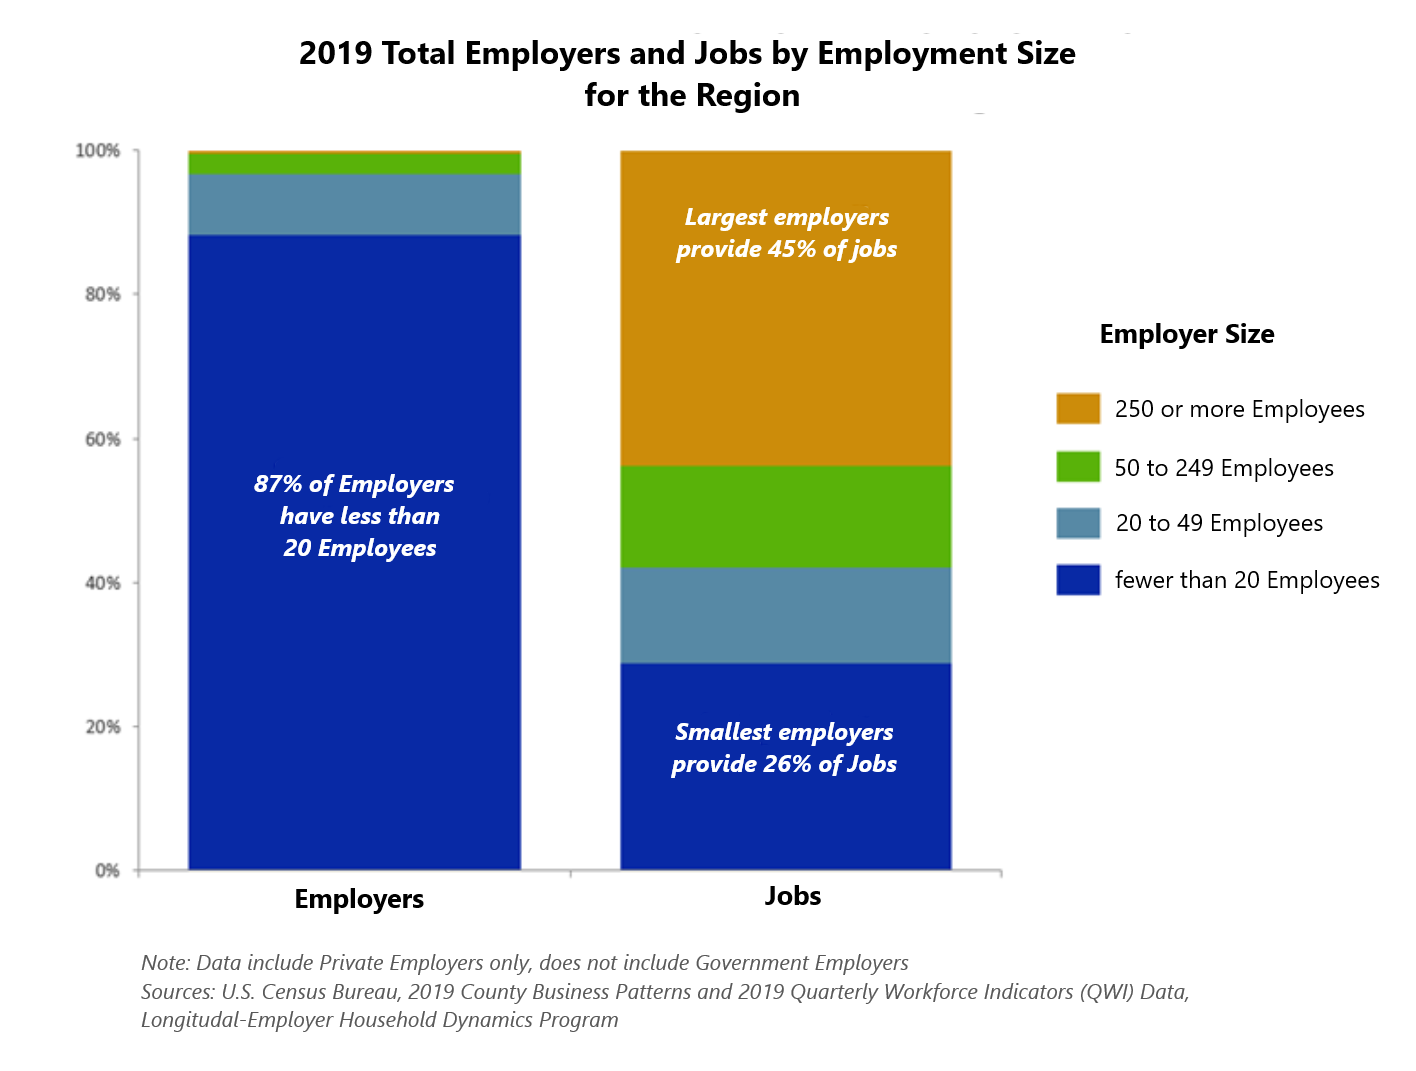 2019 Total Employers and Jobs by Employment Size in Region